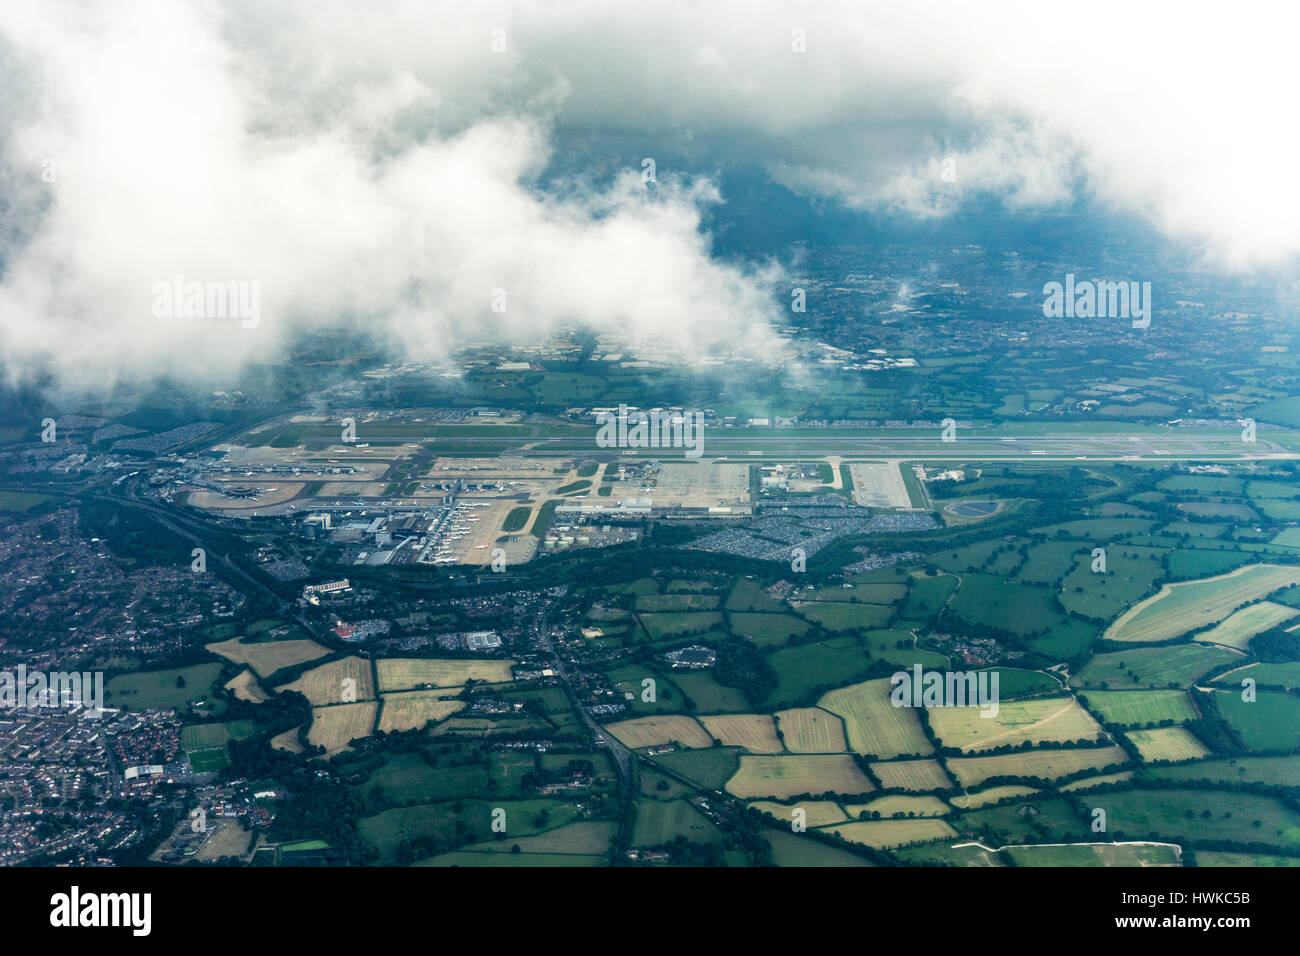 Aerial view of London Gatwick Airport, UK - Stock Image